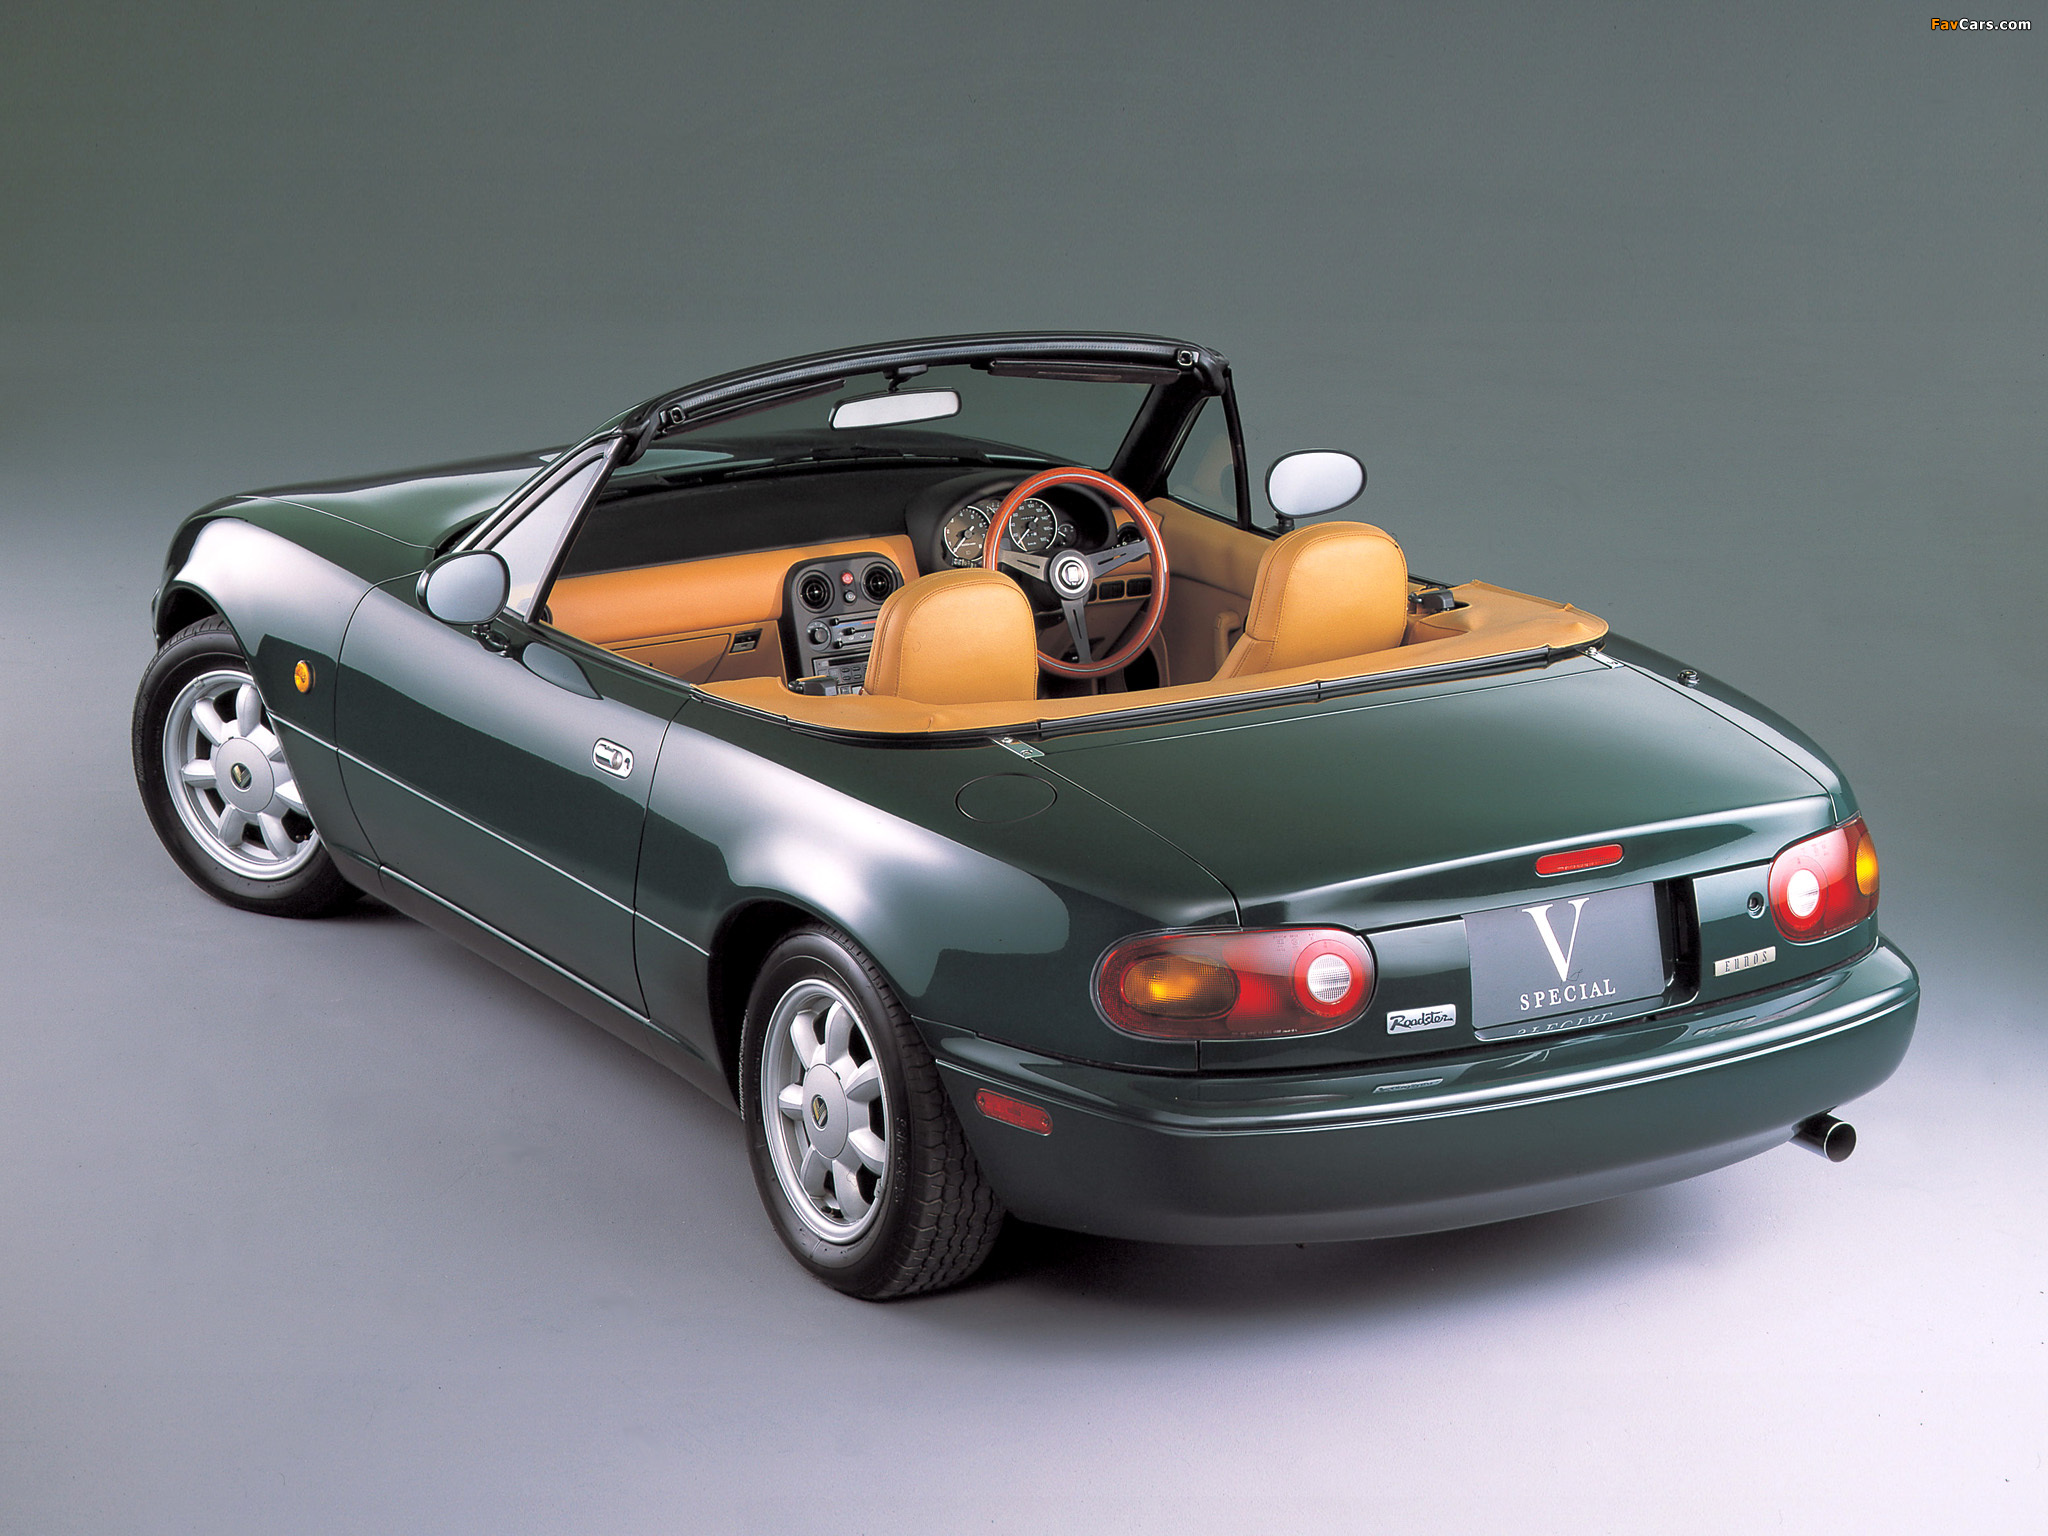 1024x768 Car Wallpapers Pictures Of Eunos Roadster V Special Na6ce 1990 91